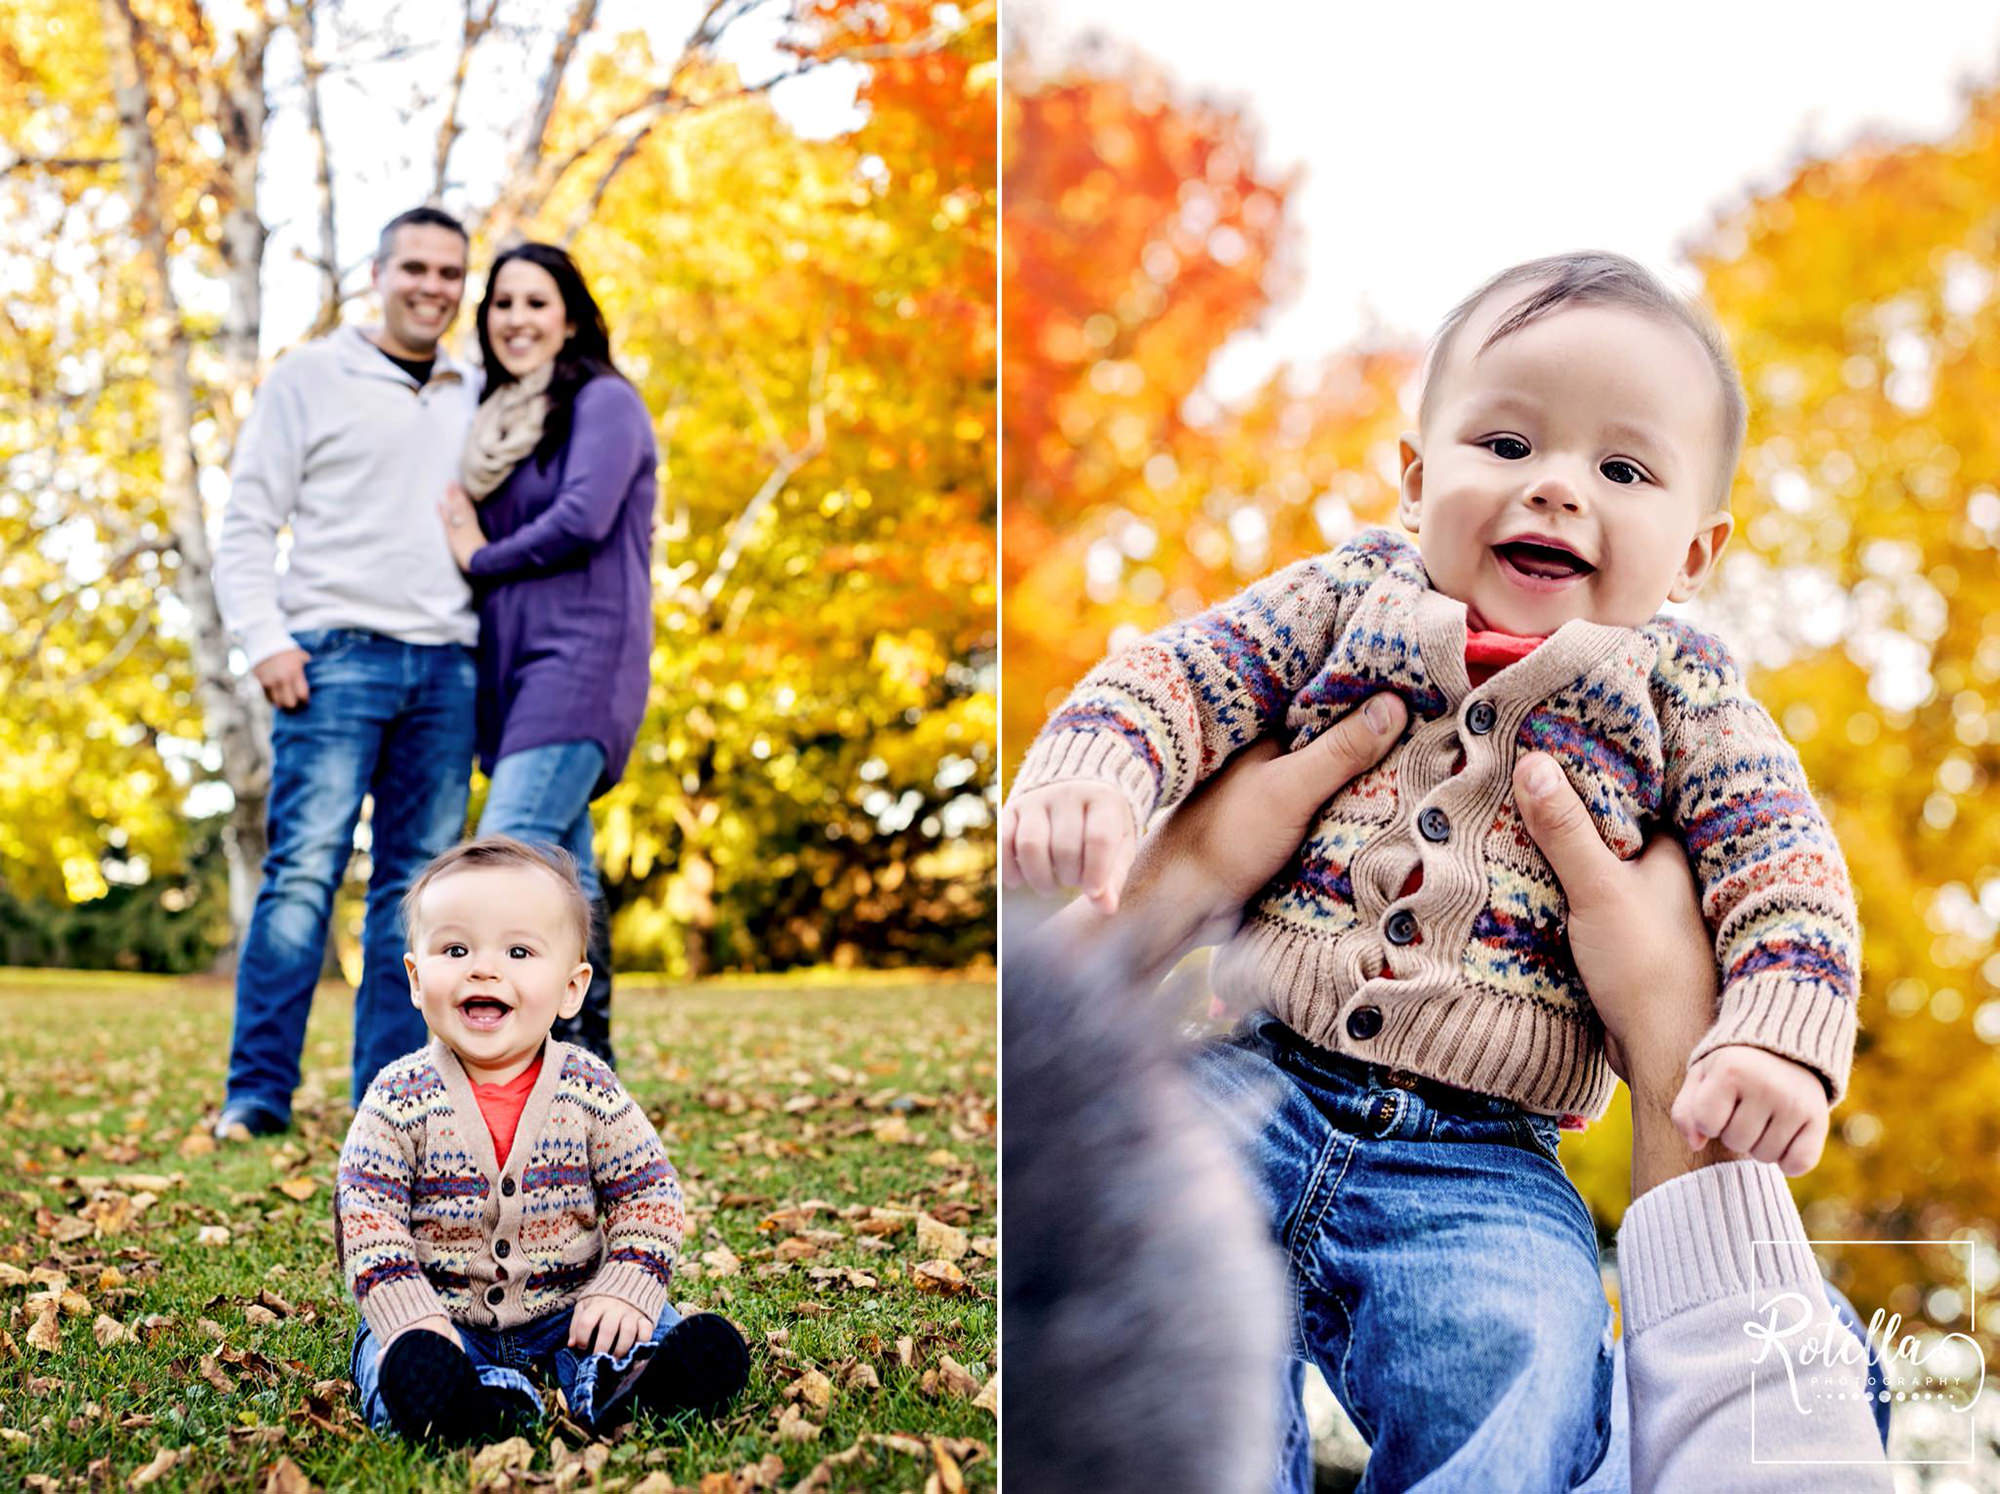 Rotella Photography - Baby and parents sitting outside in fall